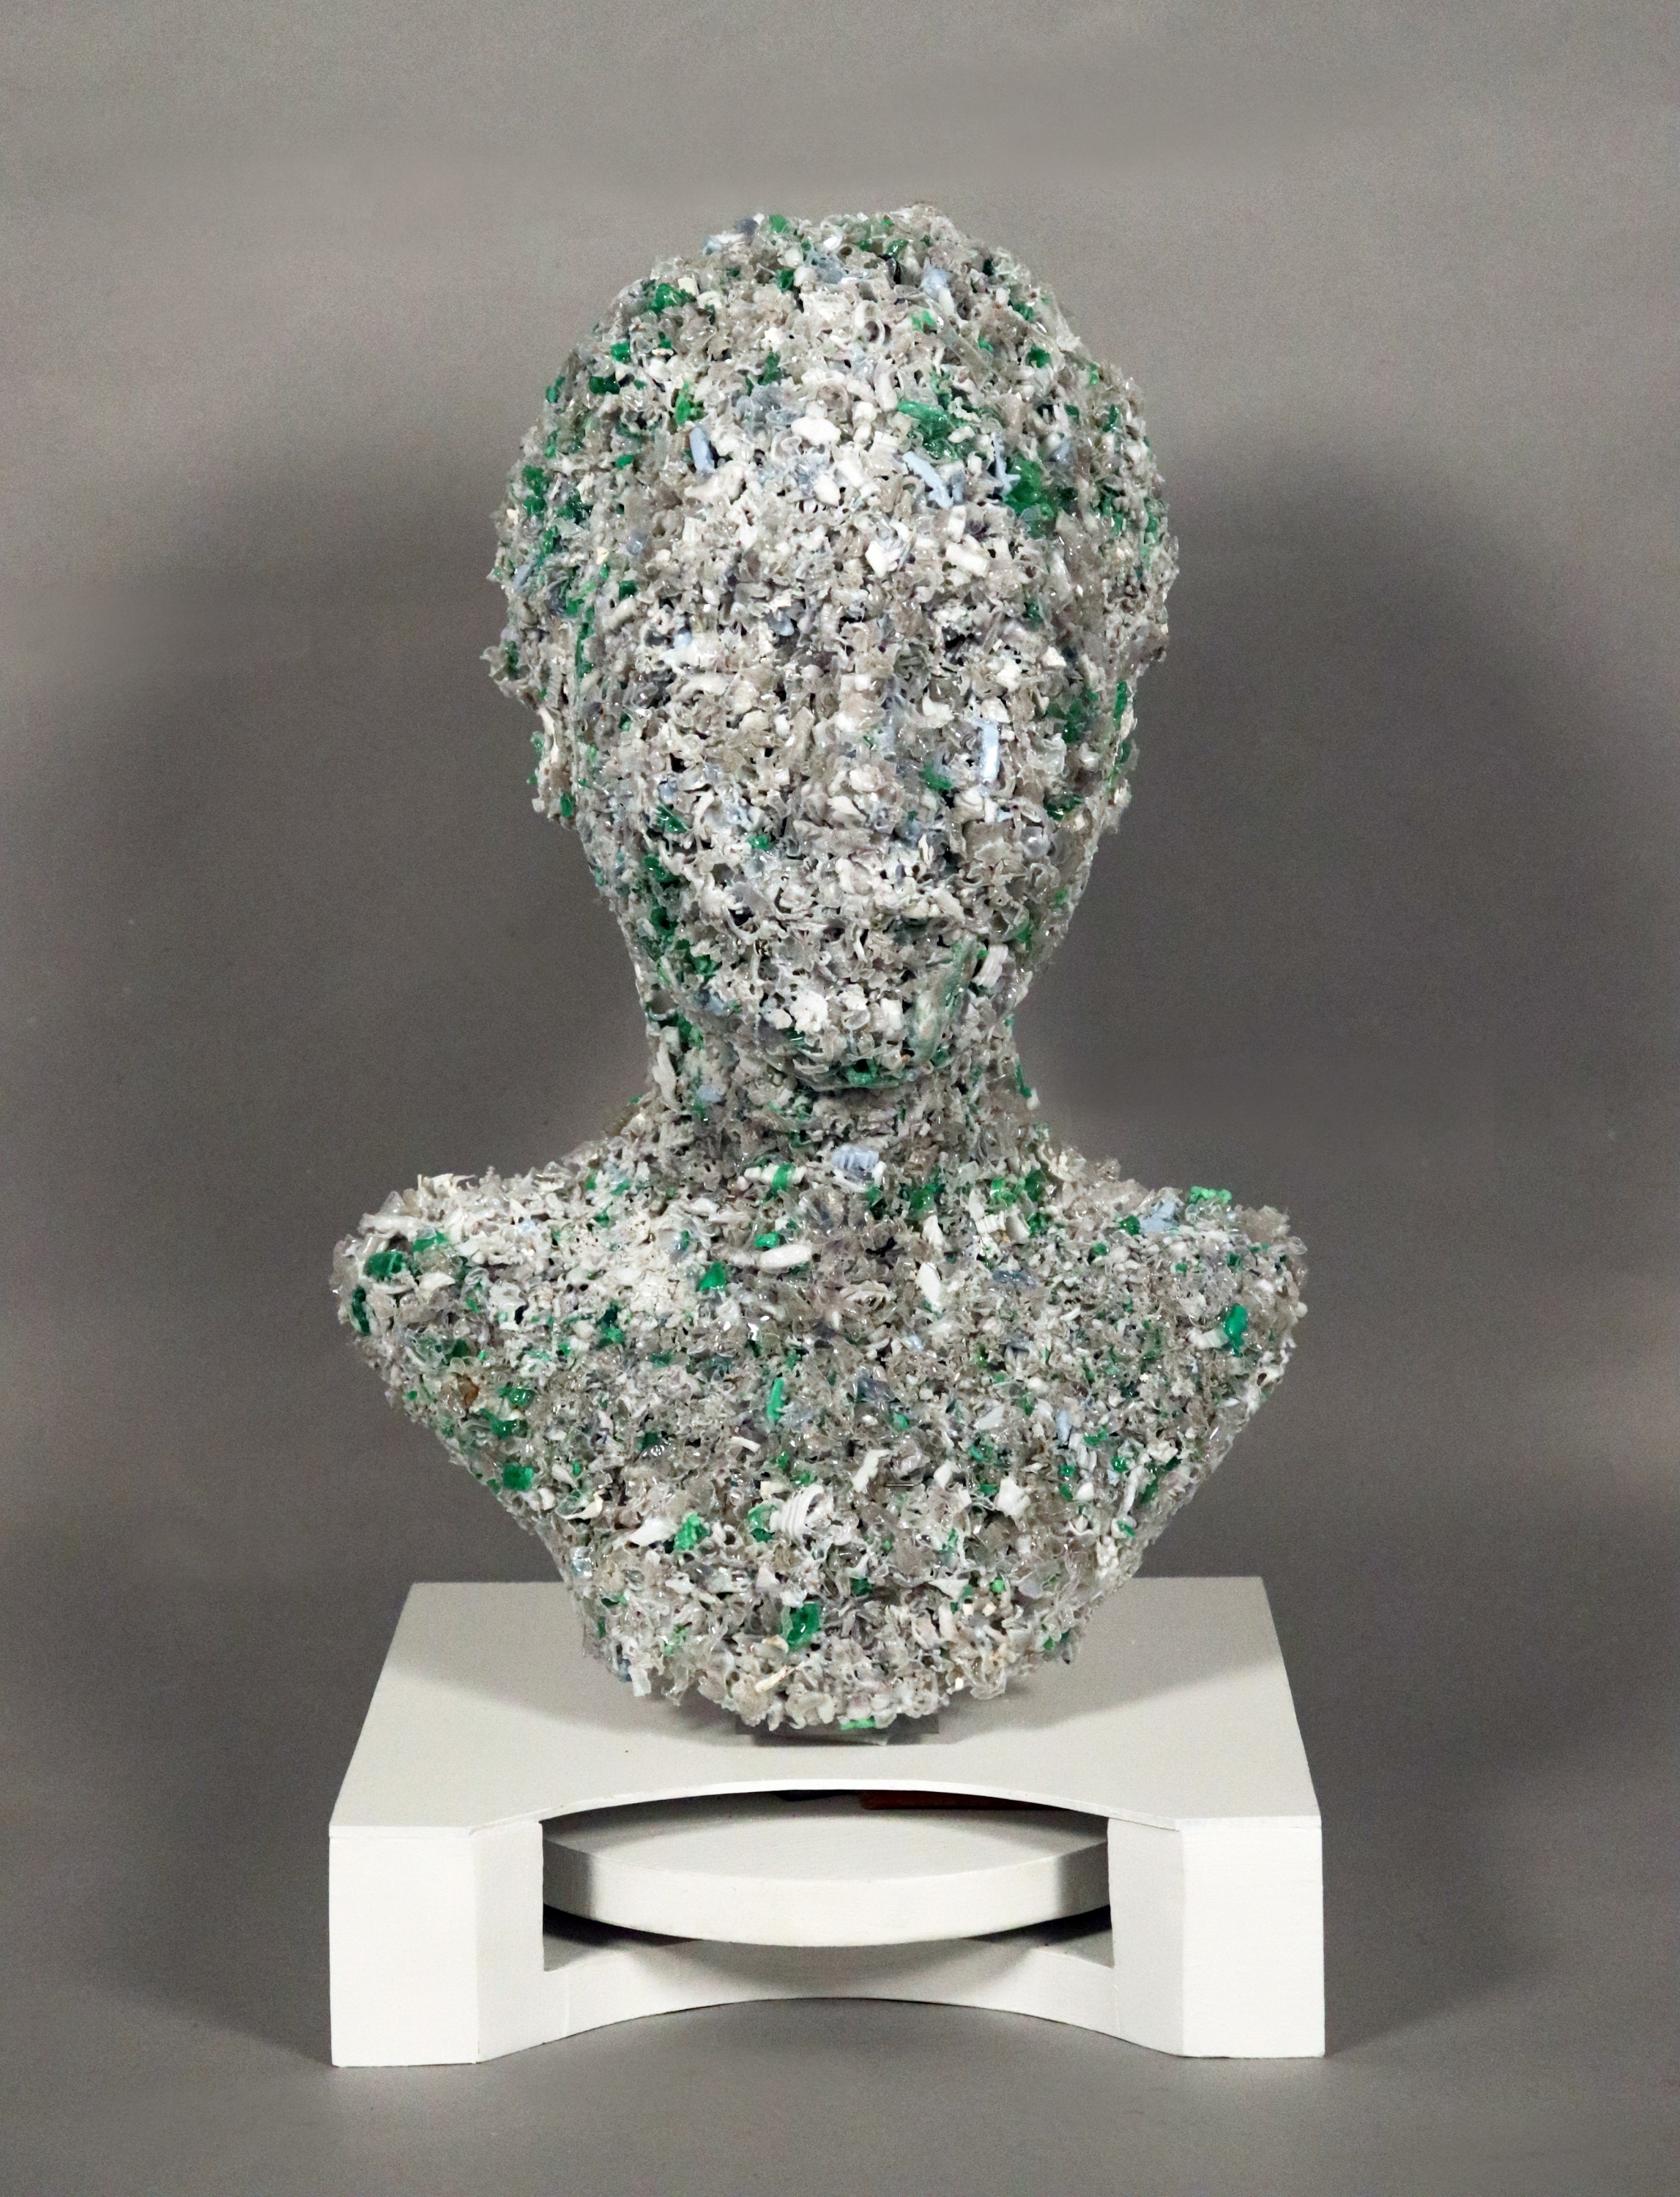 Female bust cast in recycled plastic chips, made from locally sourced water bottles